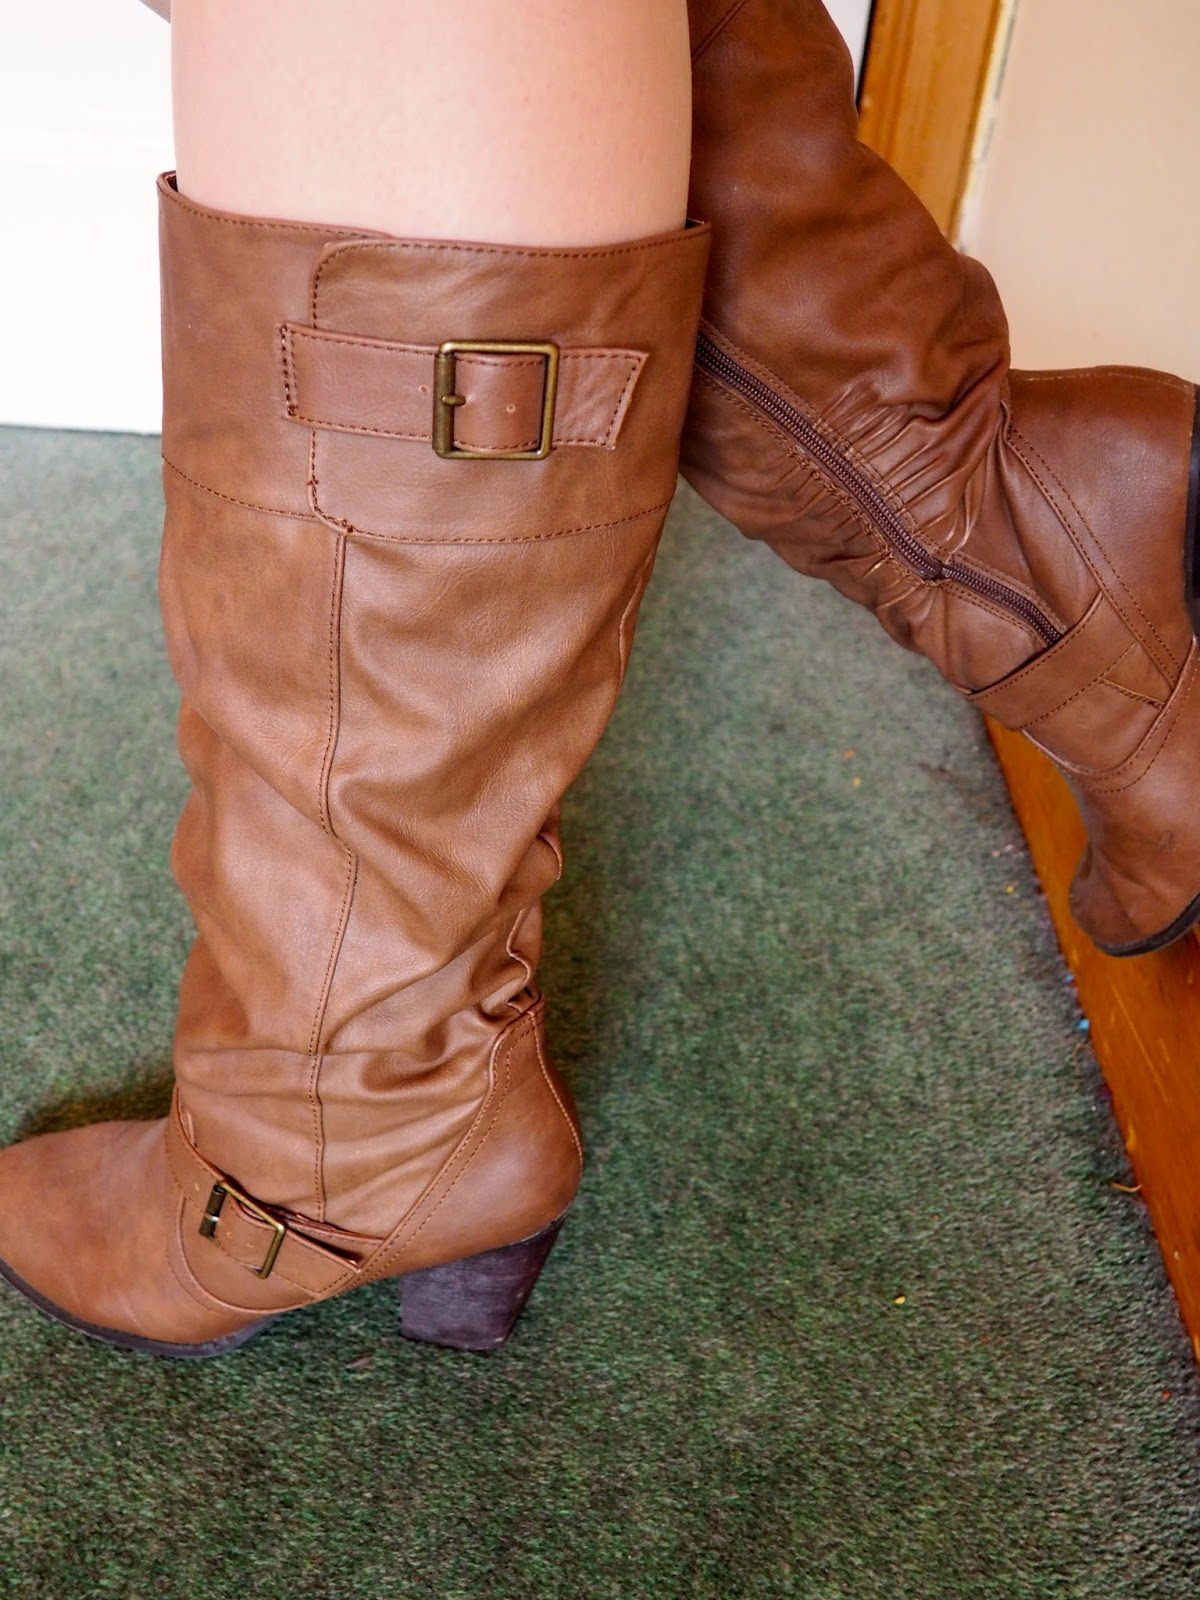 Light Layers outfit details | tall, brown leather, high heel boots